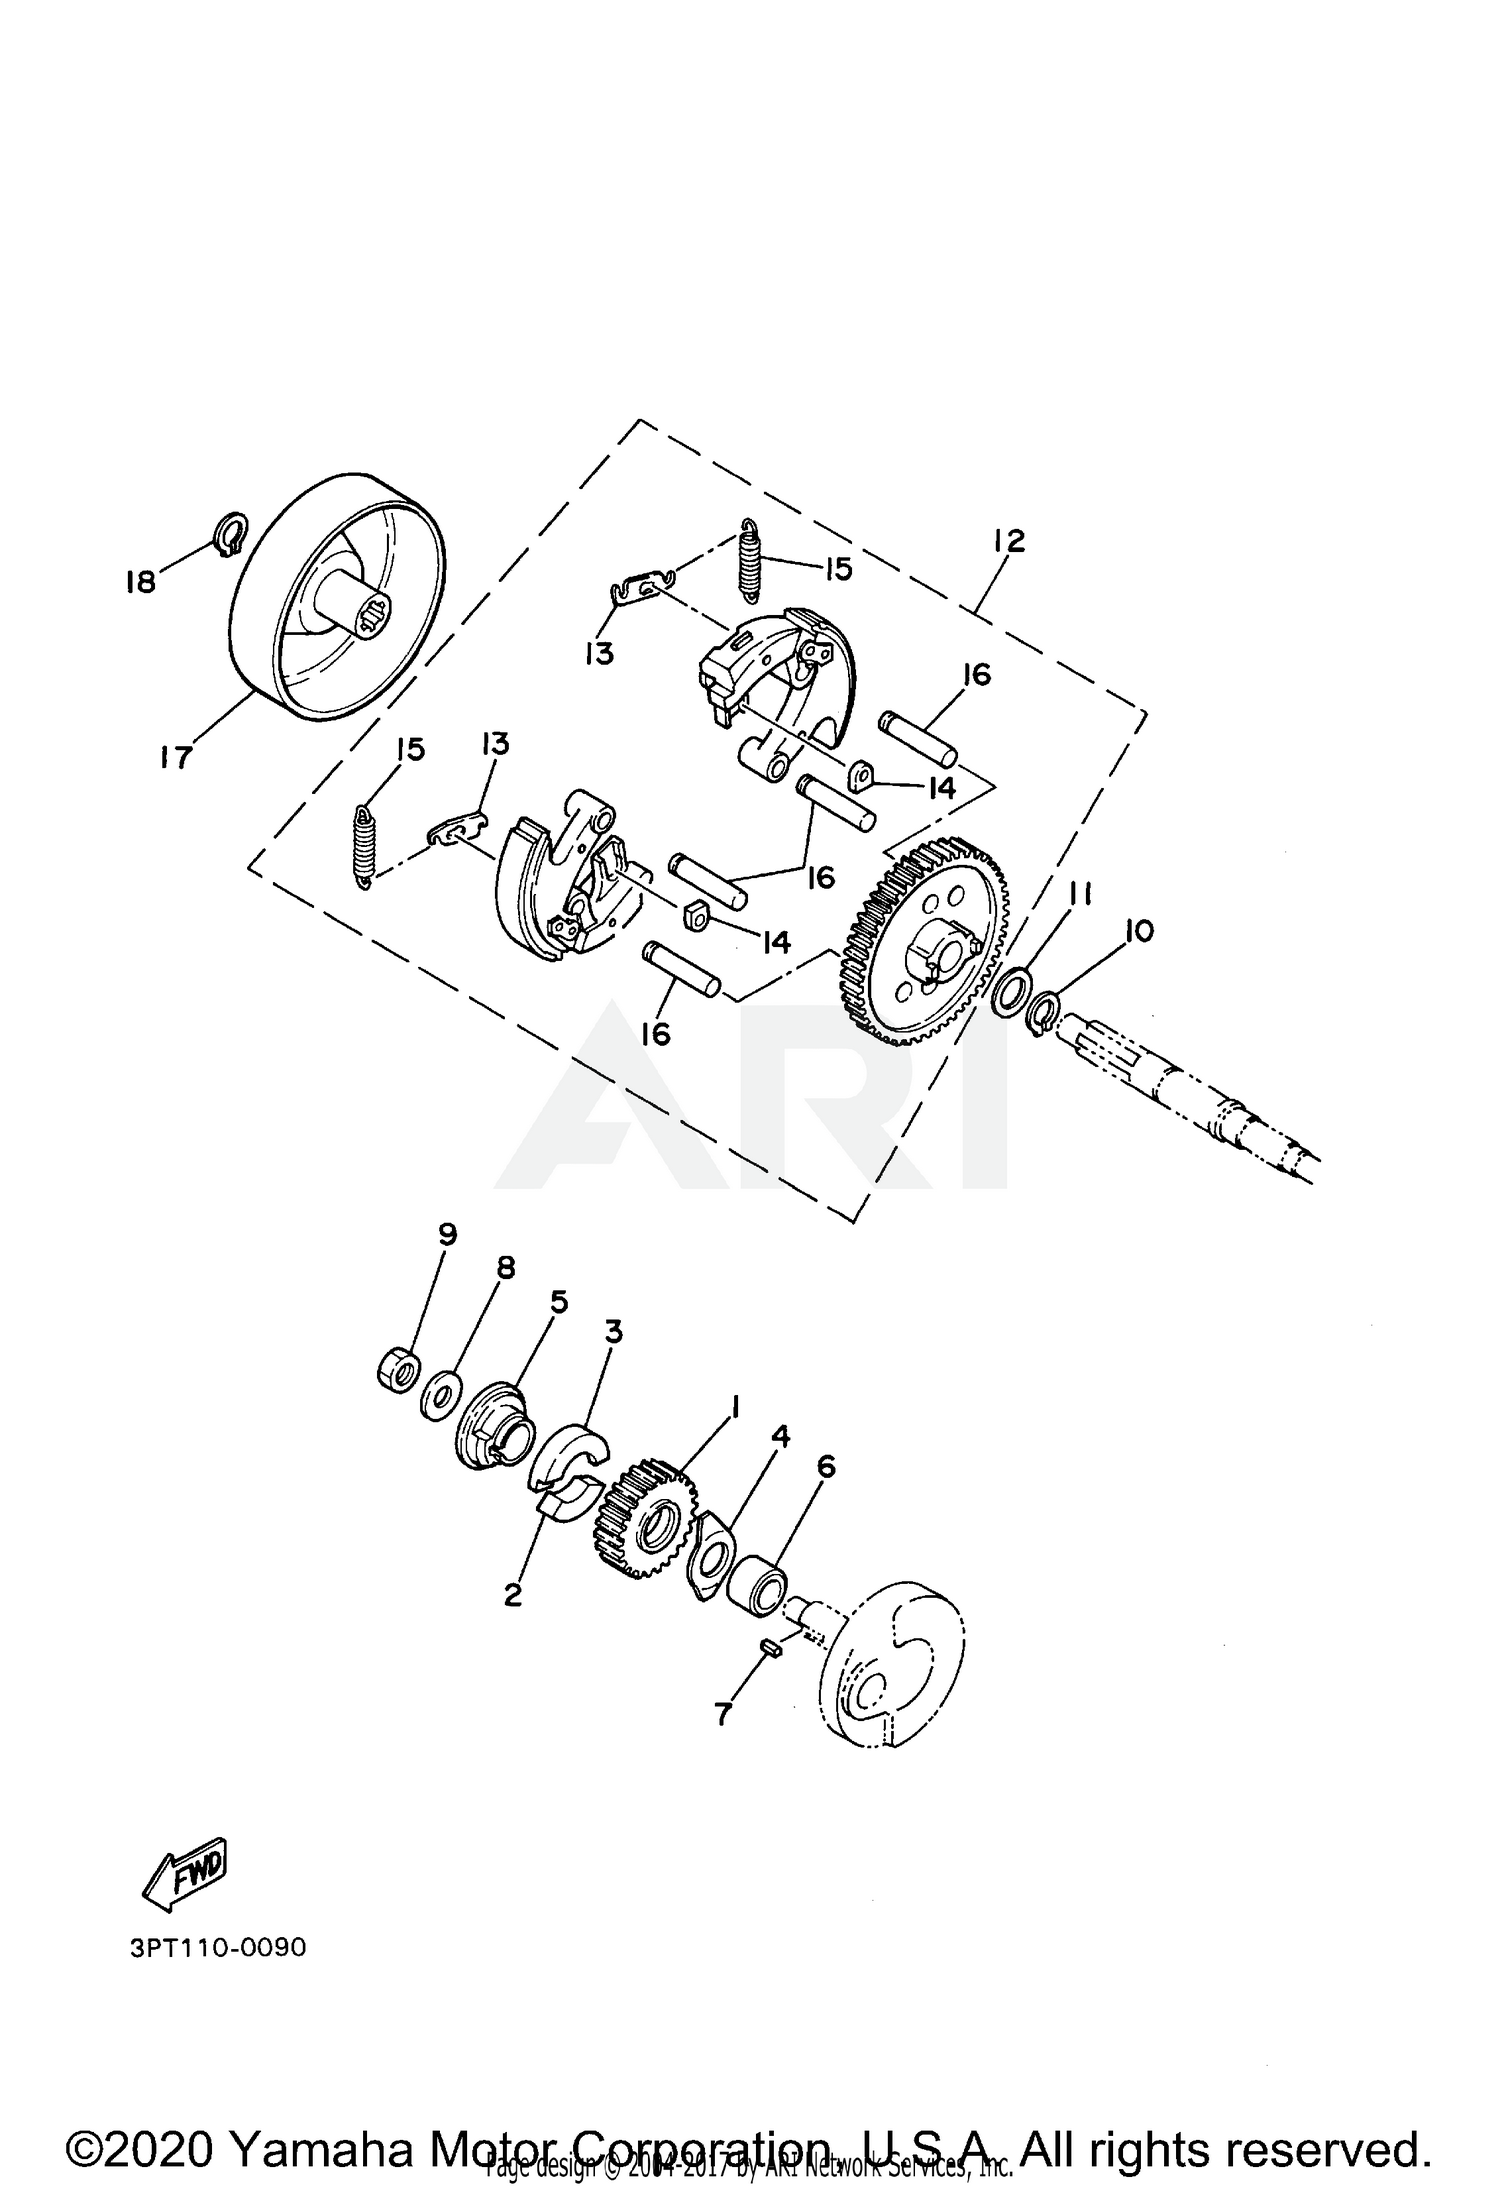 2020 Yamaha Pw50 Clutch Parts Oem Diagram For Motorcycles